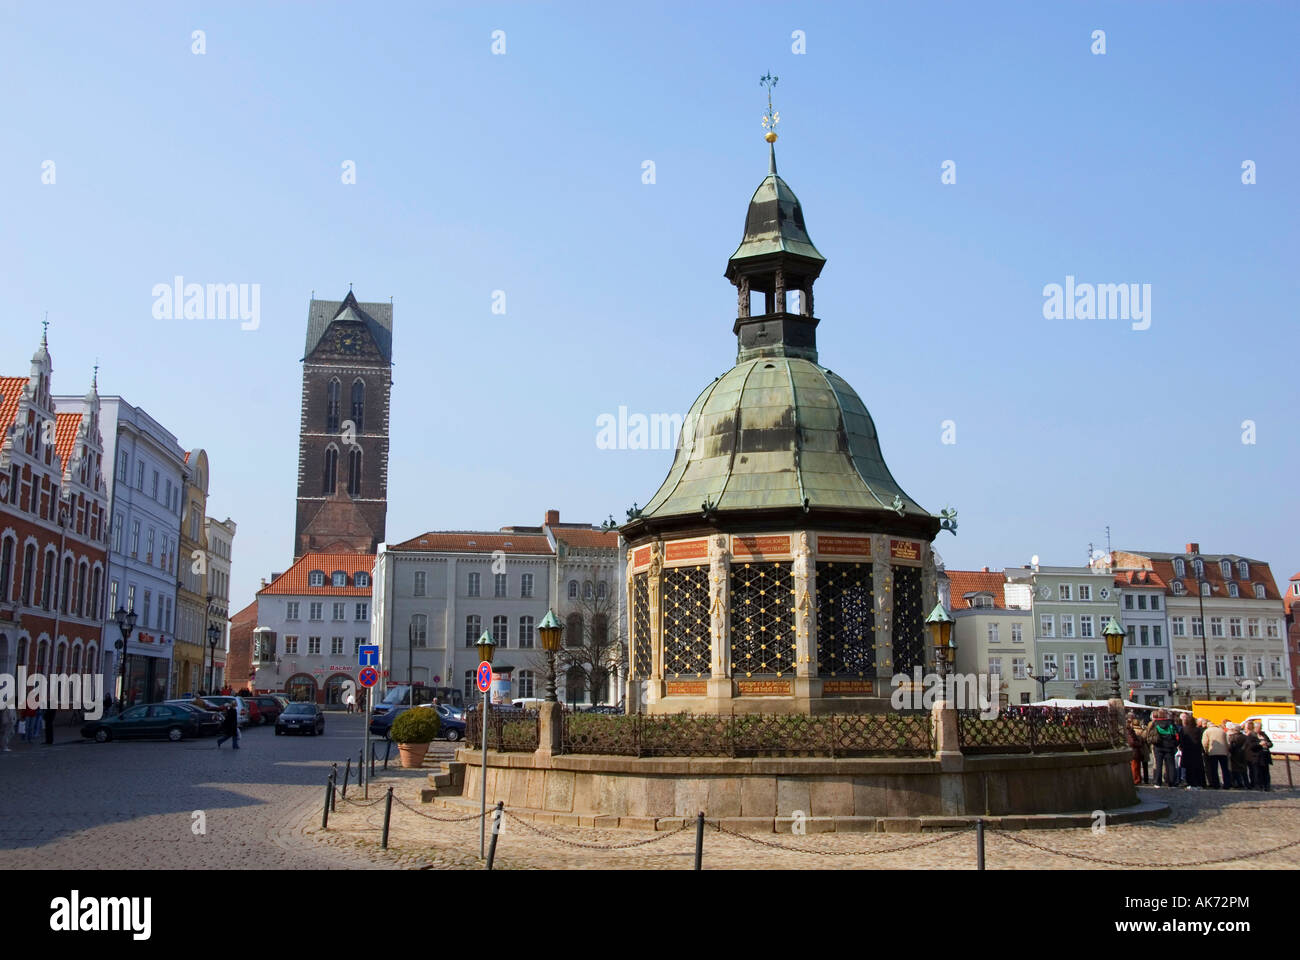 Pavilion of water art / Wismar - Stock Image